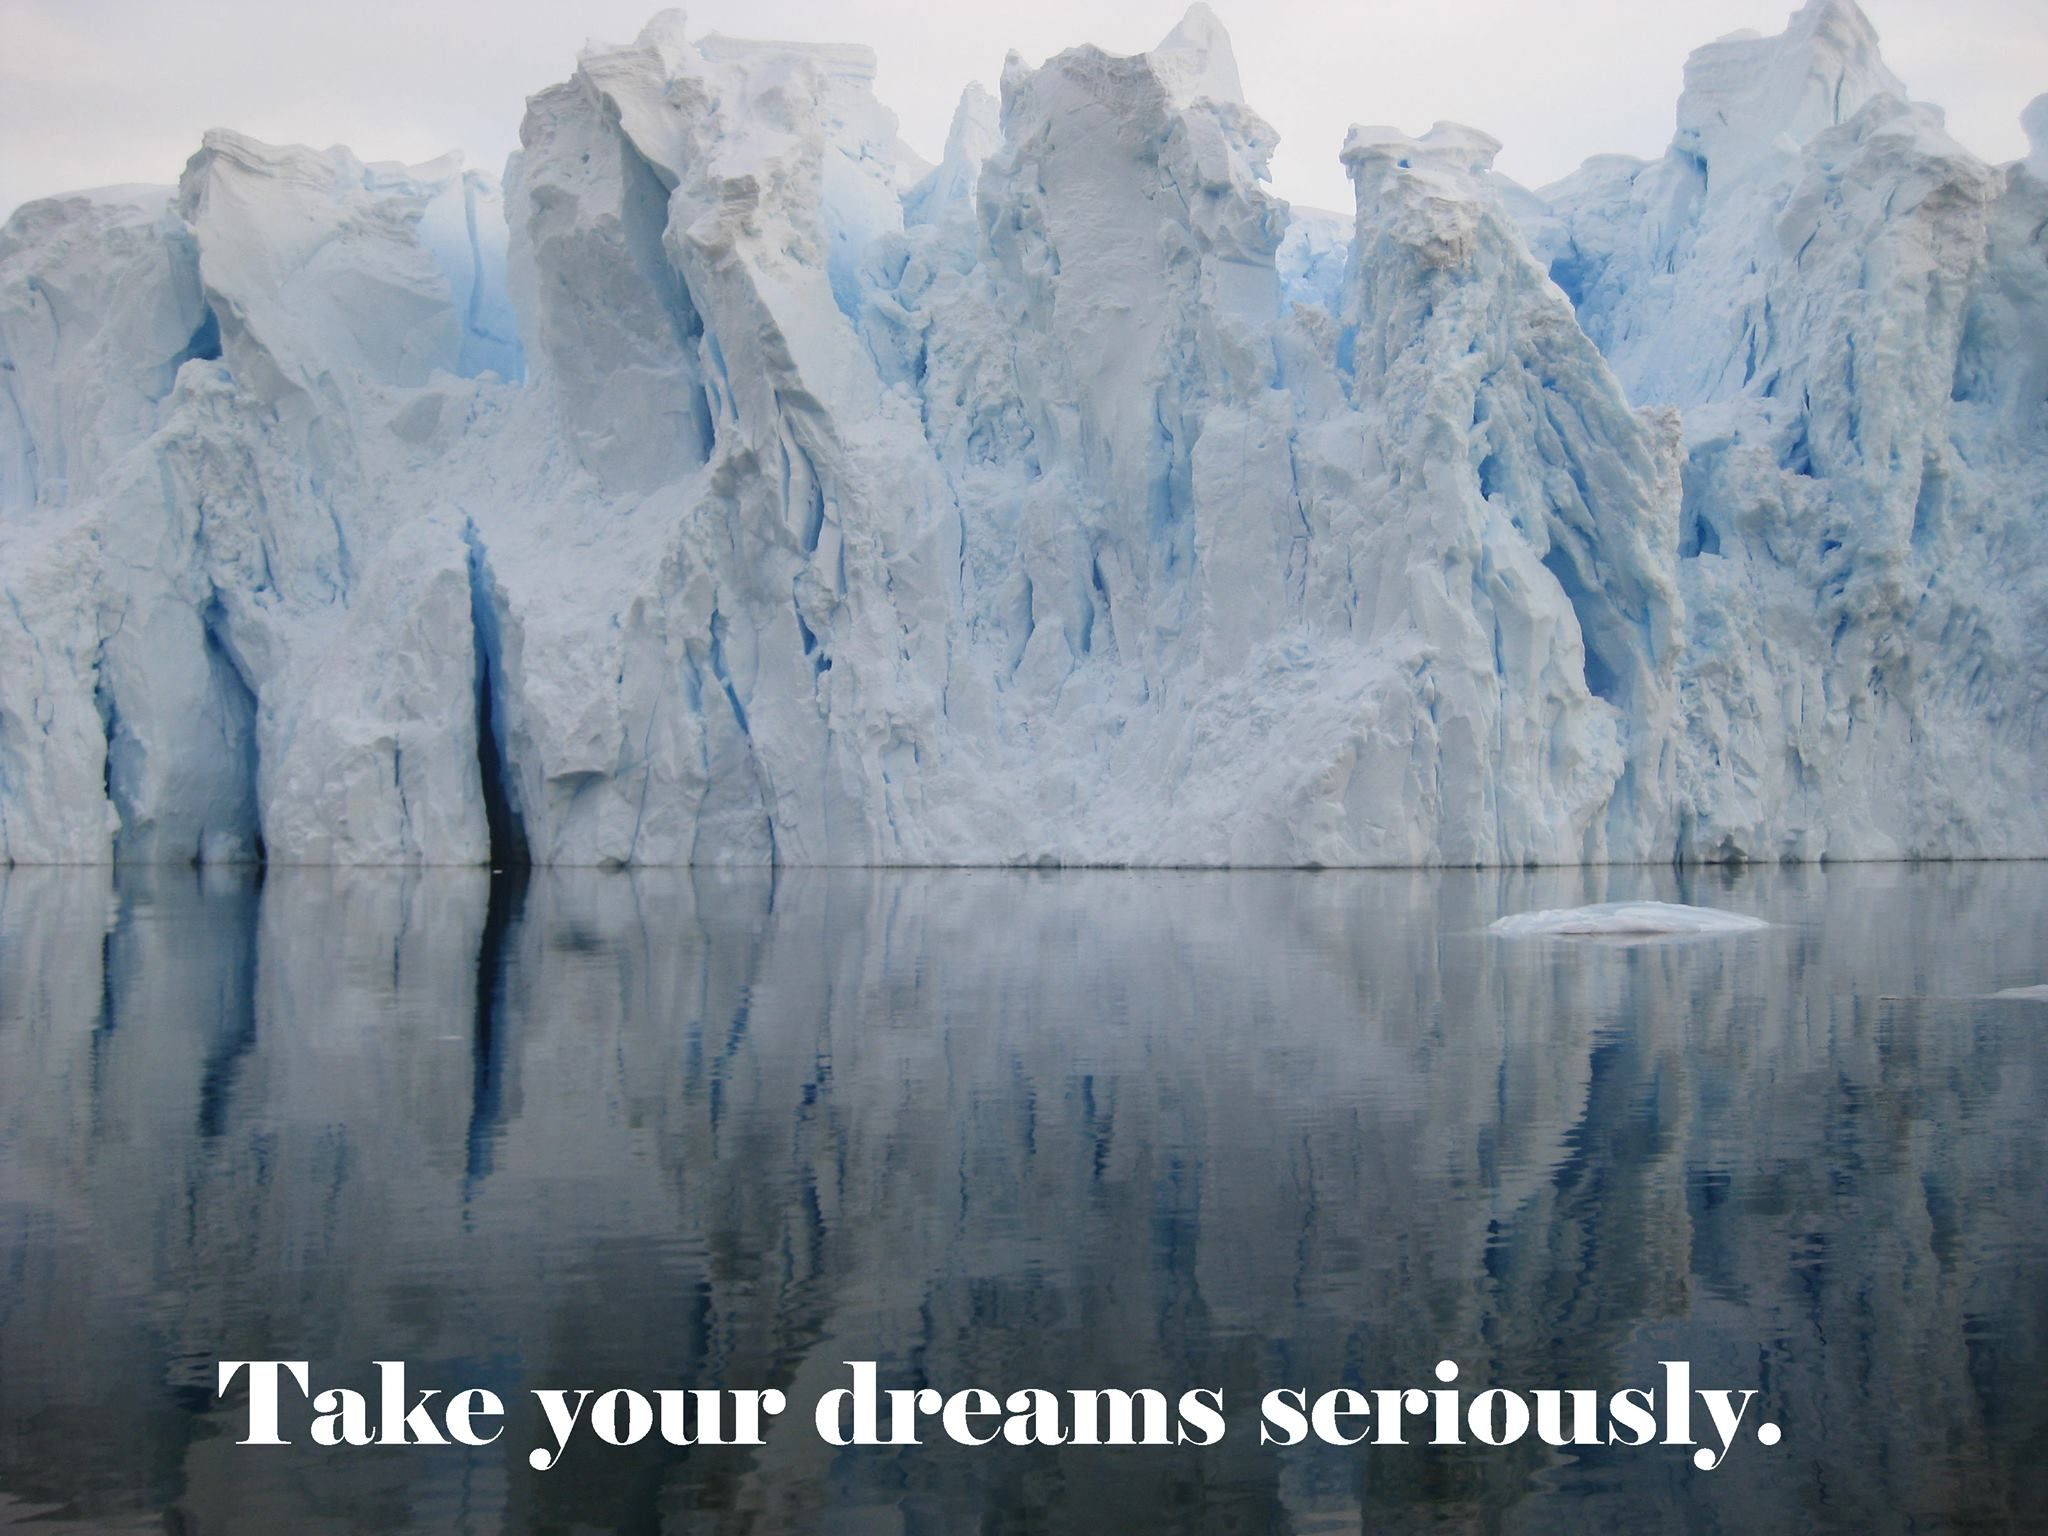 Take your dreams seriously.